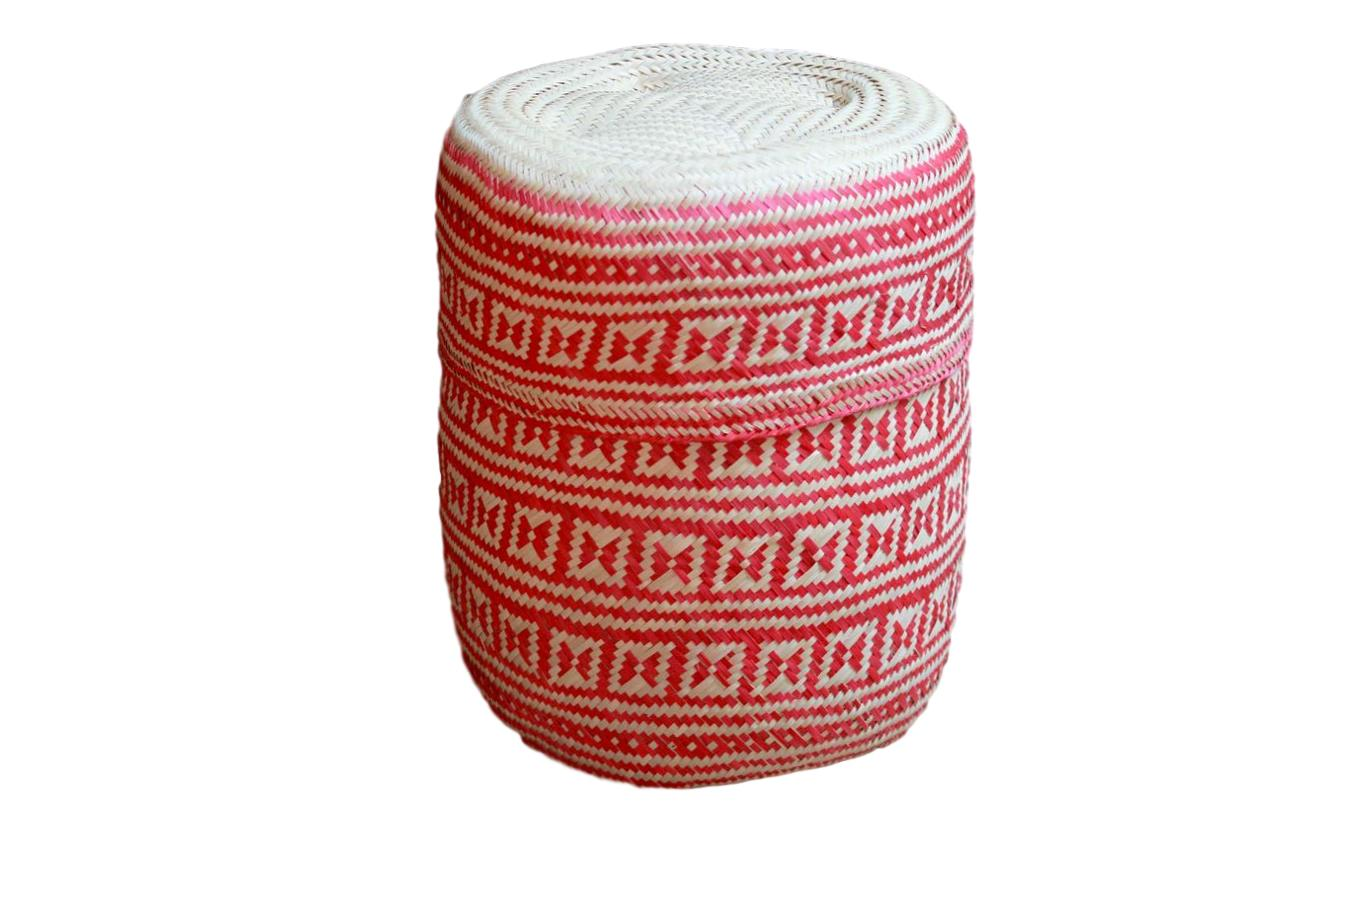 Hand-woven Red Medium Palm Basket